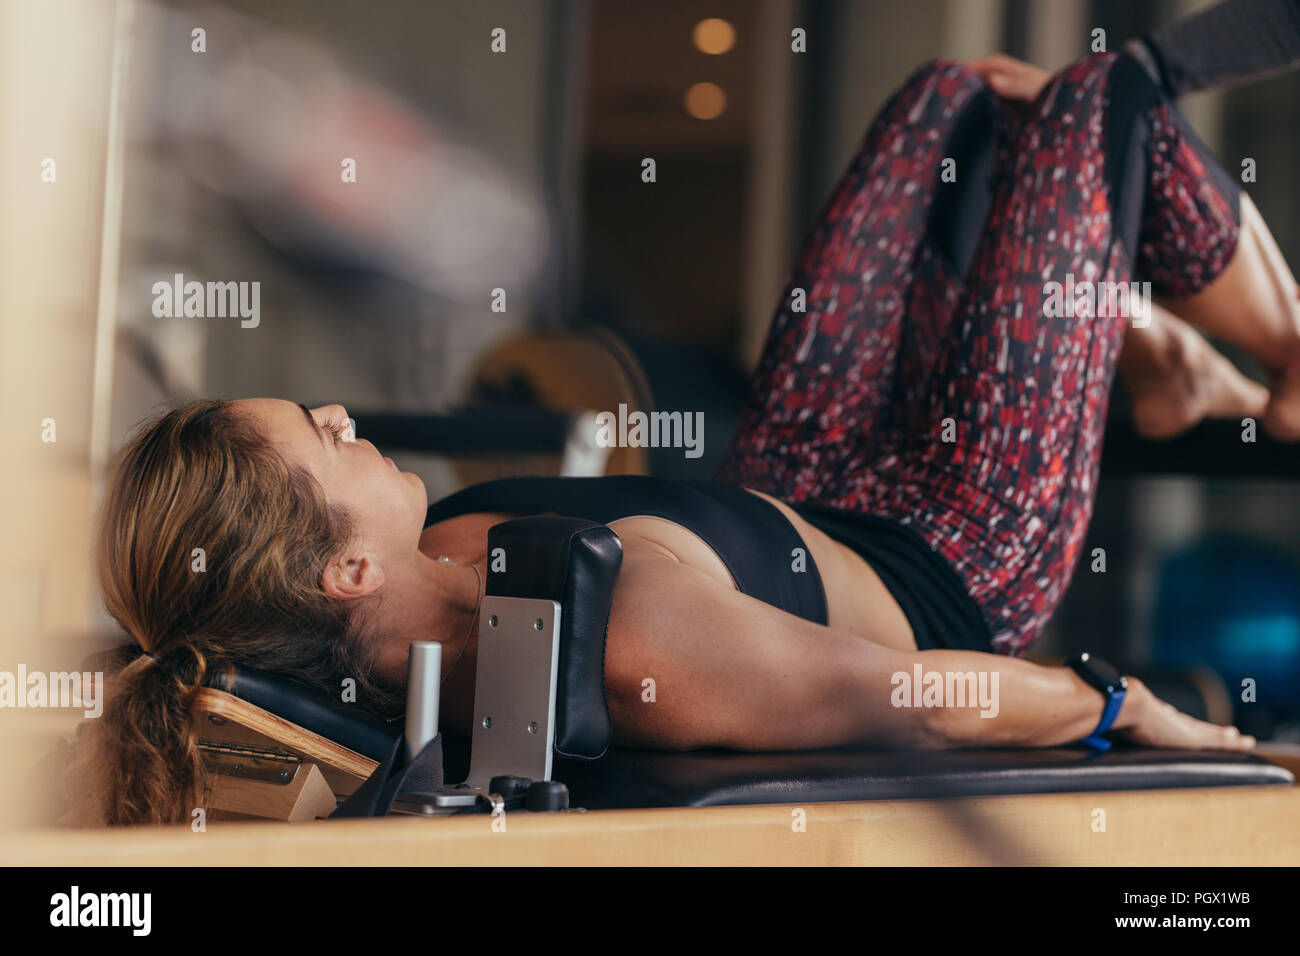 Fitness woman doing pilates workout lying on a fitness machine. Pilates woman at a gym doing exercises. - Stock Image